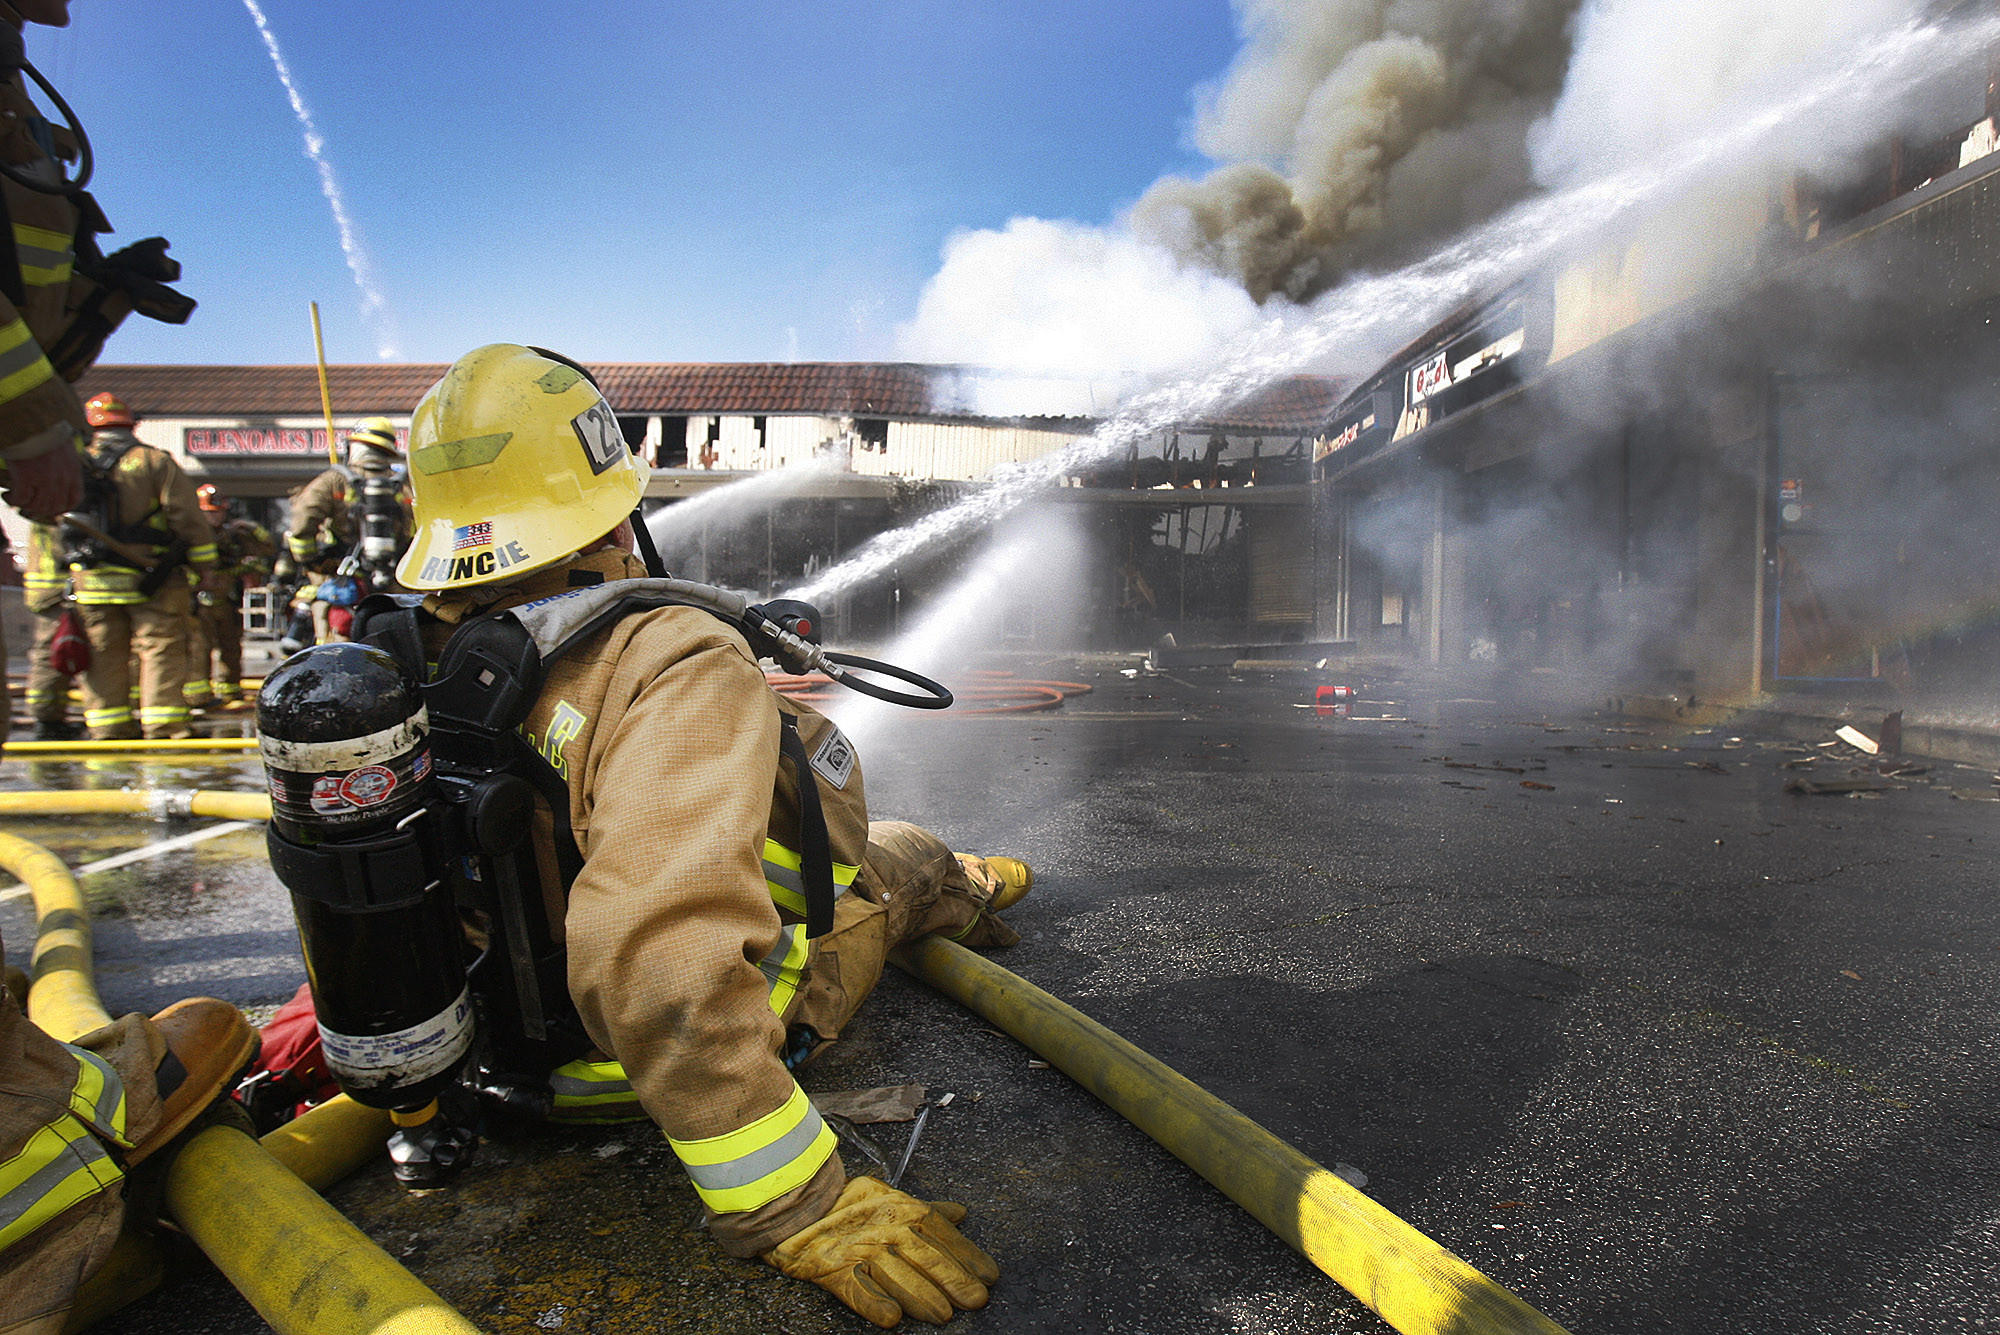 A fireman from Glendale station 23 holds a stream from a line of hose steady on a hot spot at the scene of an intense fire in a strip mall on the corner of Howard Street and Glendale Blvd. in Glendale on Monday, February 10, 2014.